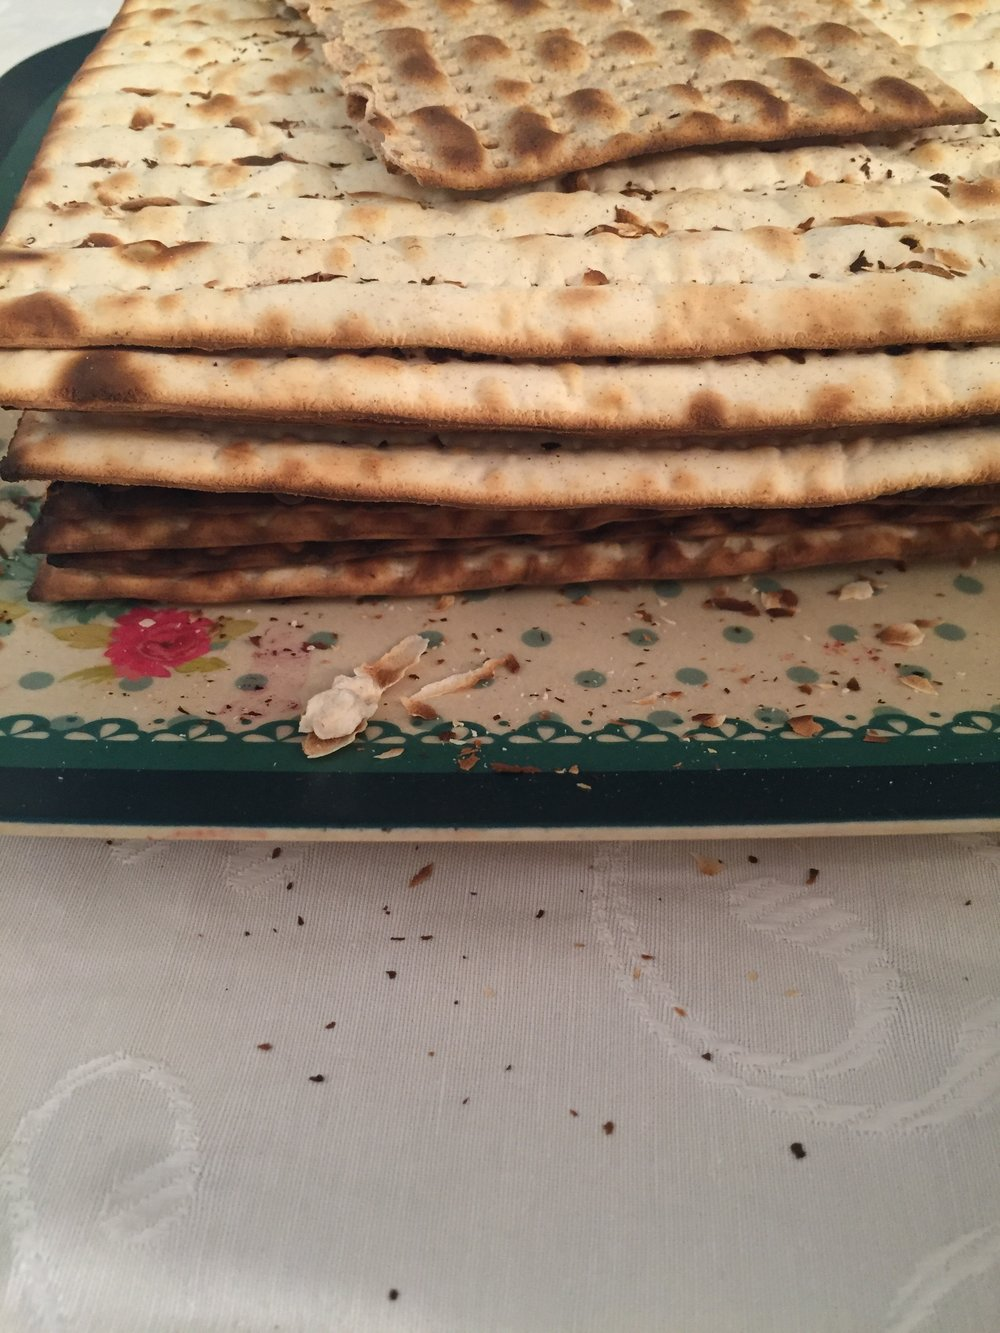 Matzah at the Passover Seder